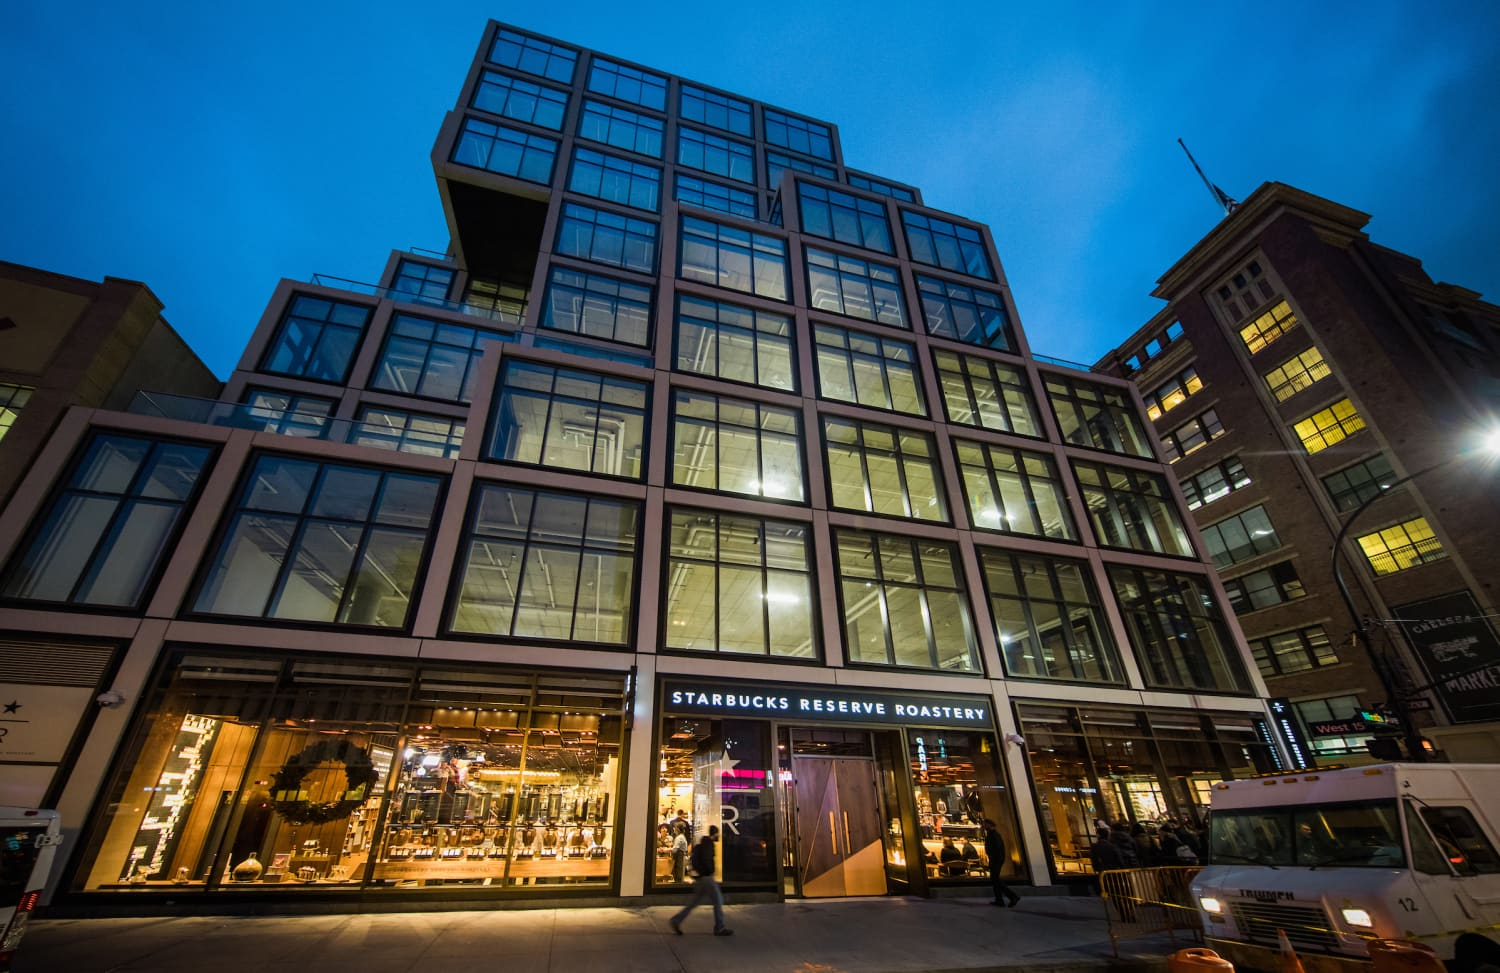 A 23,000-Square-Foot Starbucks Just Opened in New York City